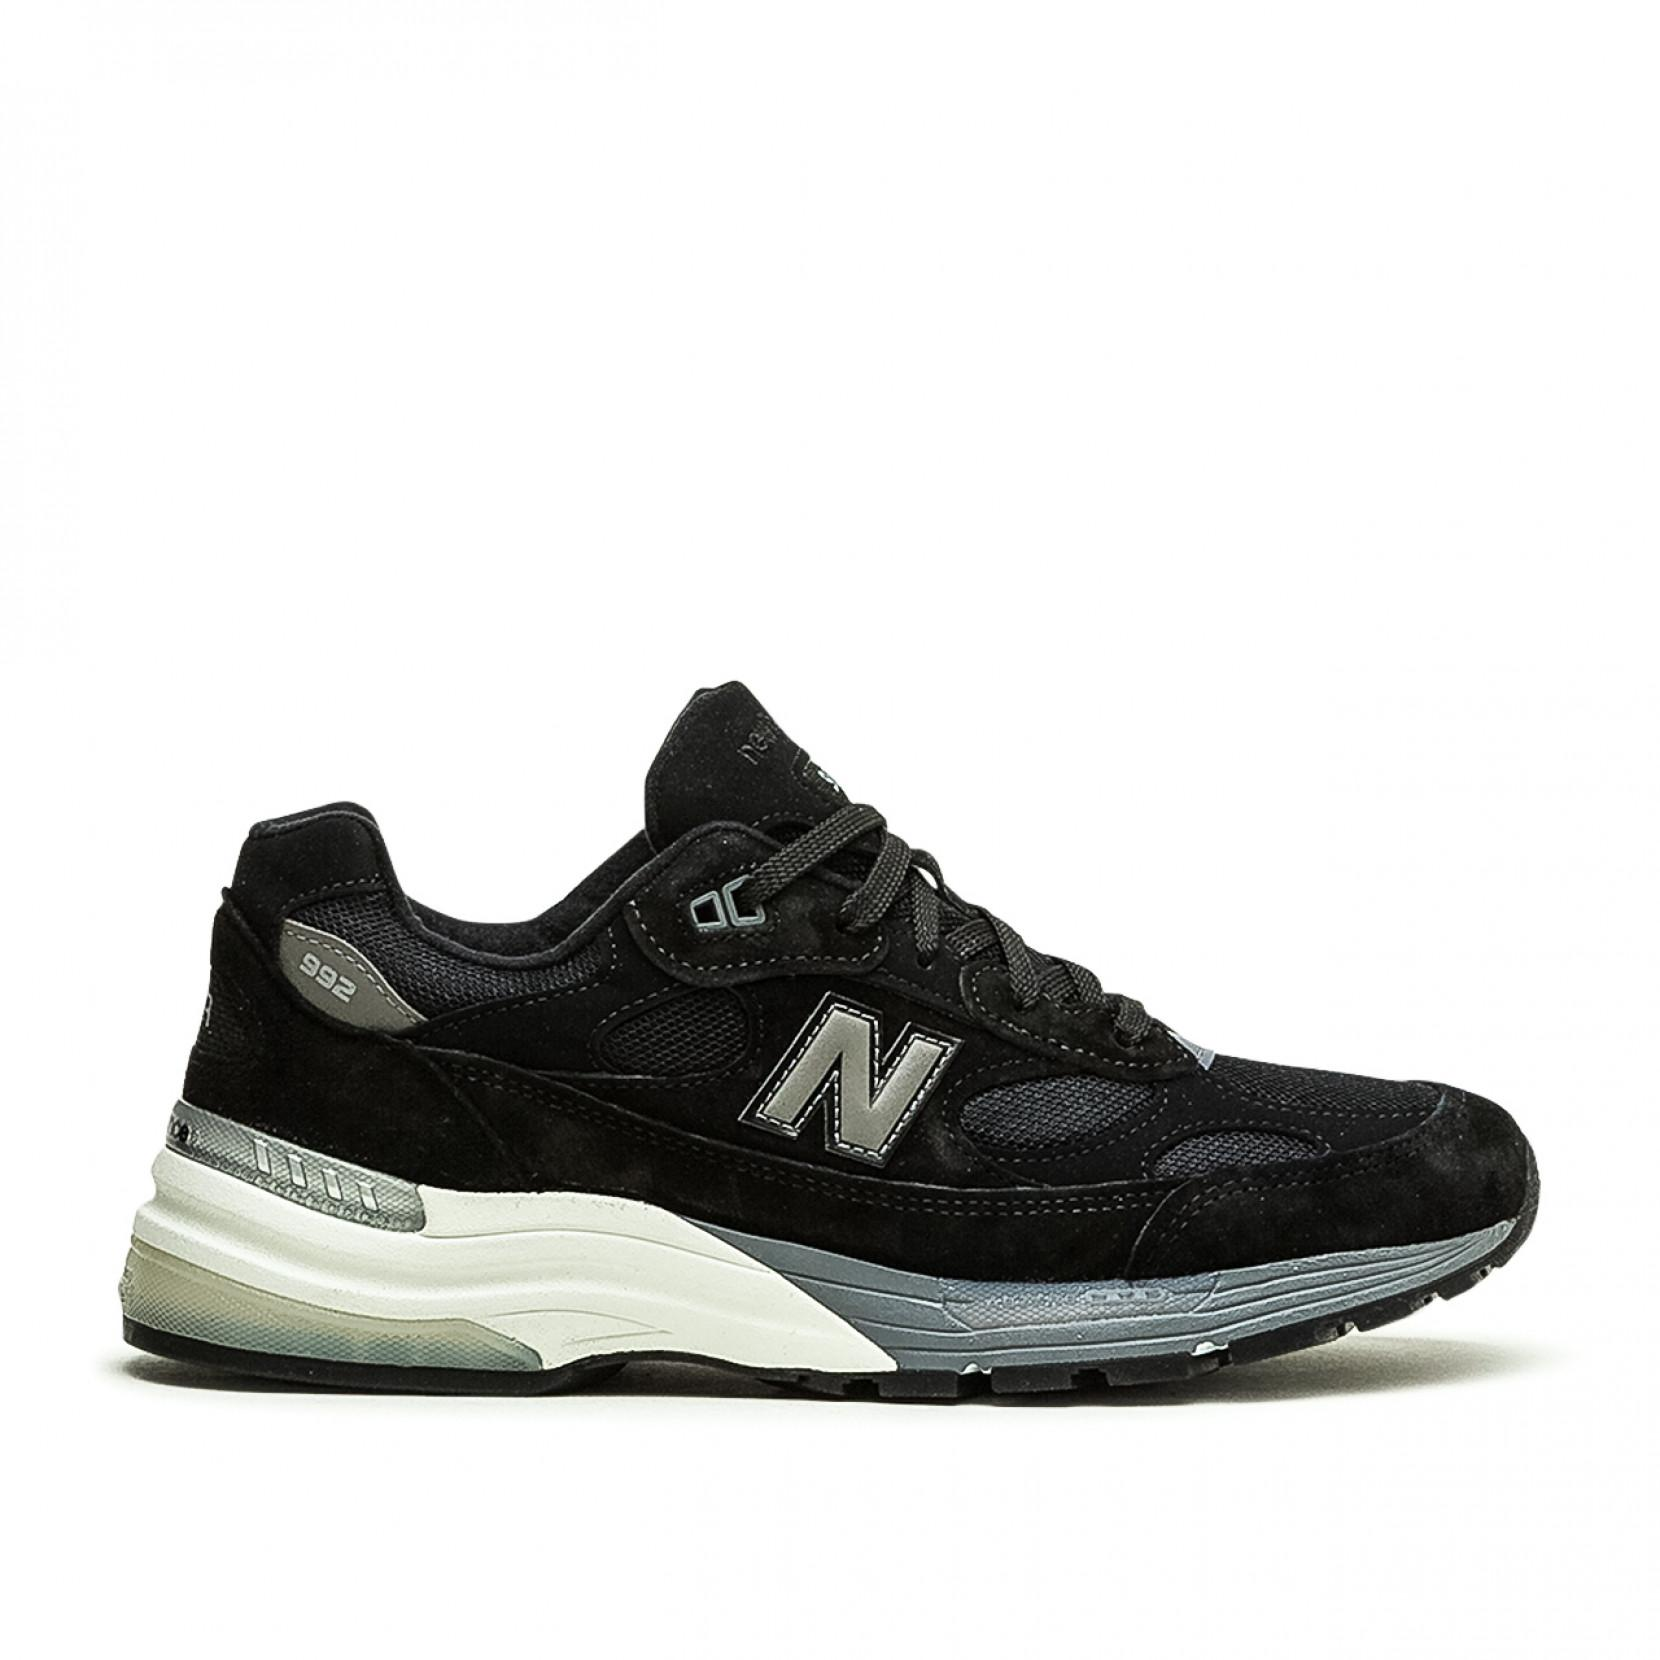 New Balance Suede 992 in Black/Grey (Black) for Men - Save 70% - Lyst